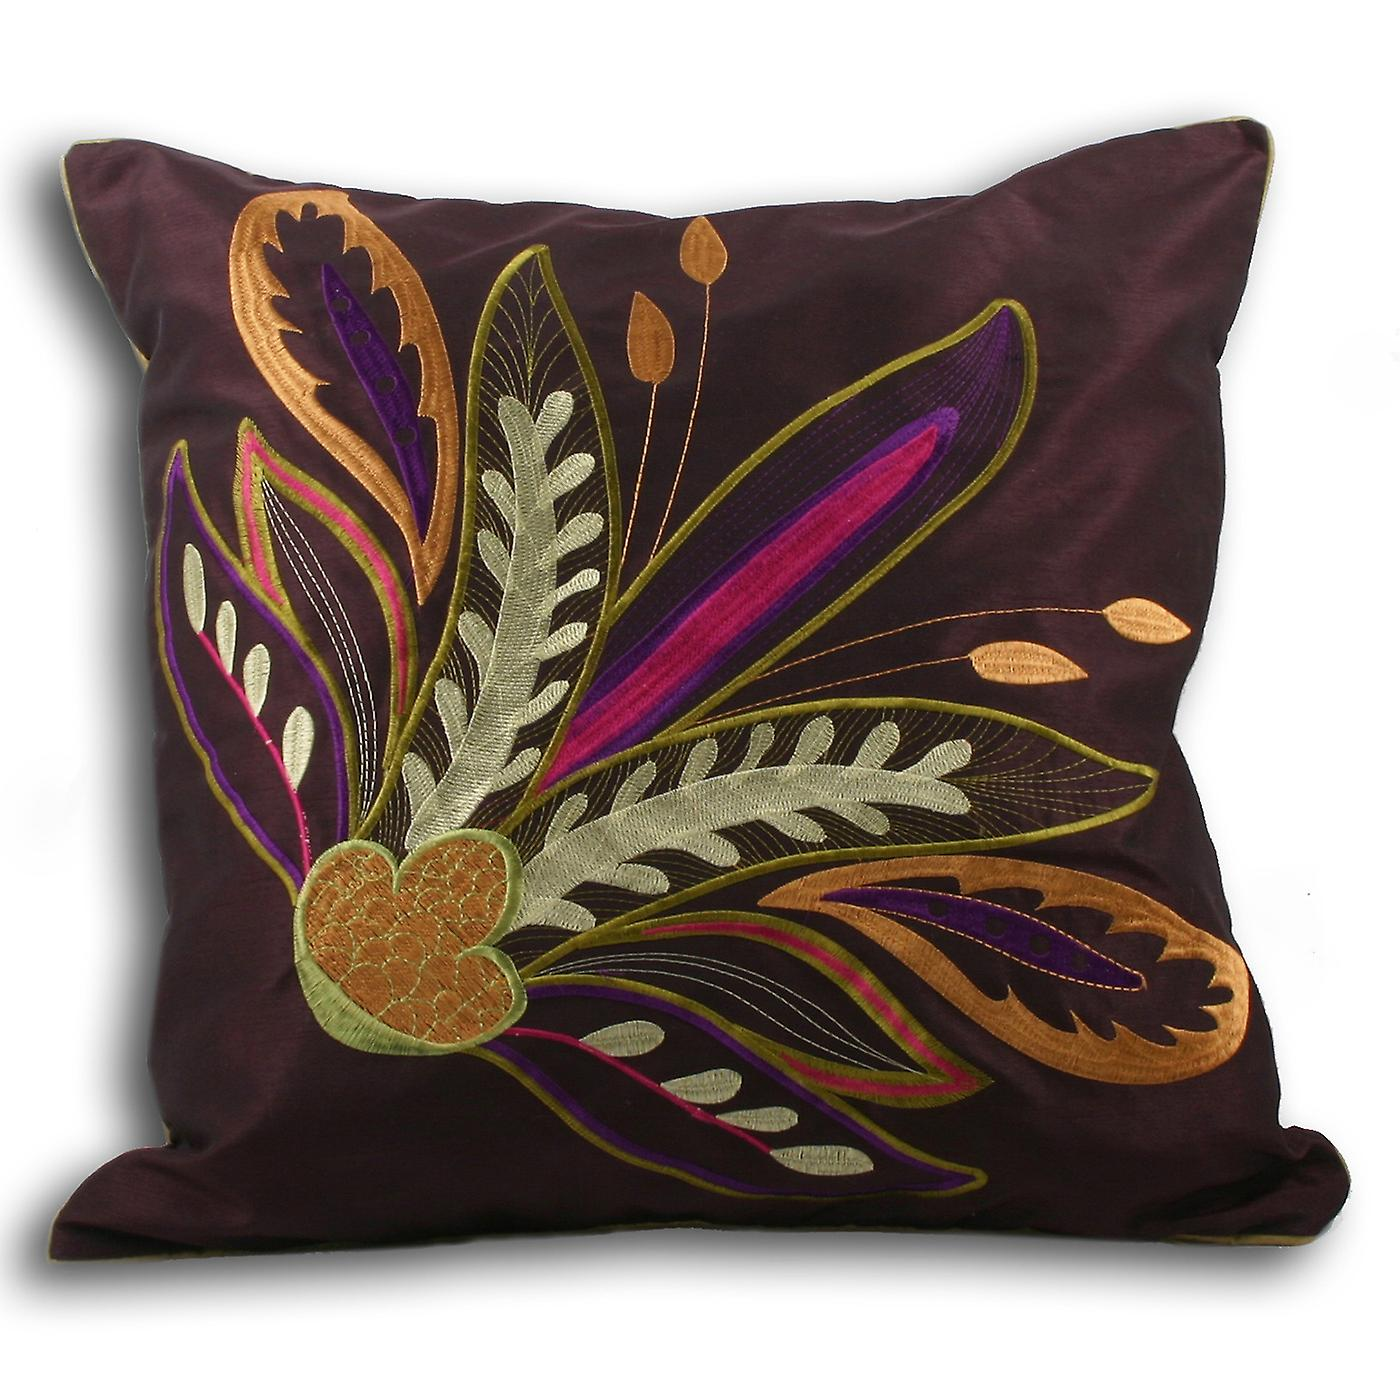 Home Riva Cover Indian Summer Cushion FKJlc3T1